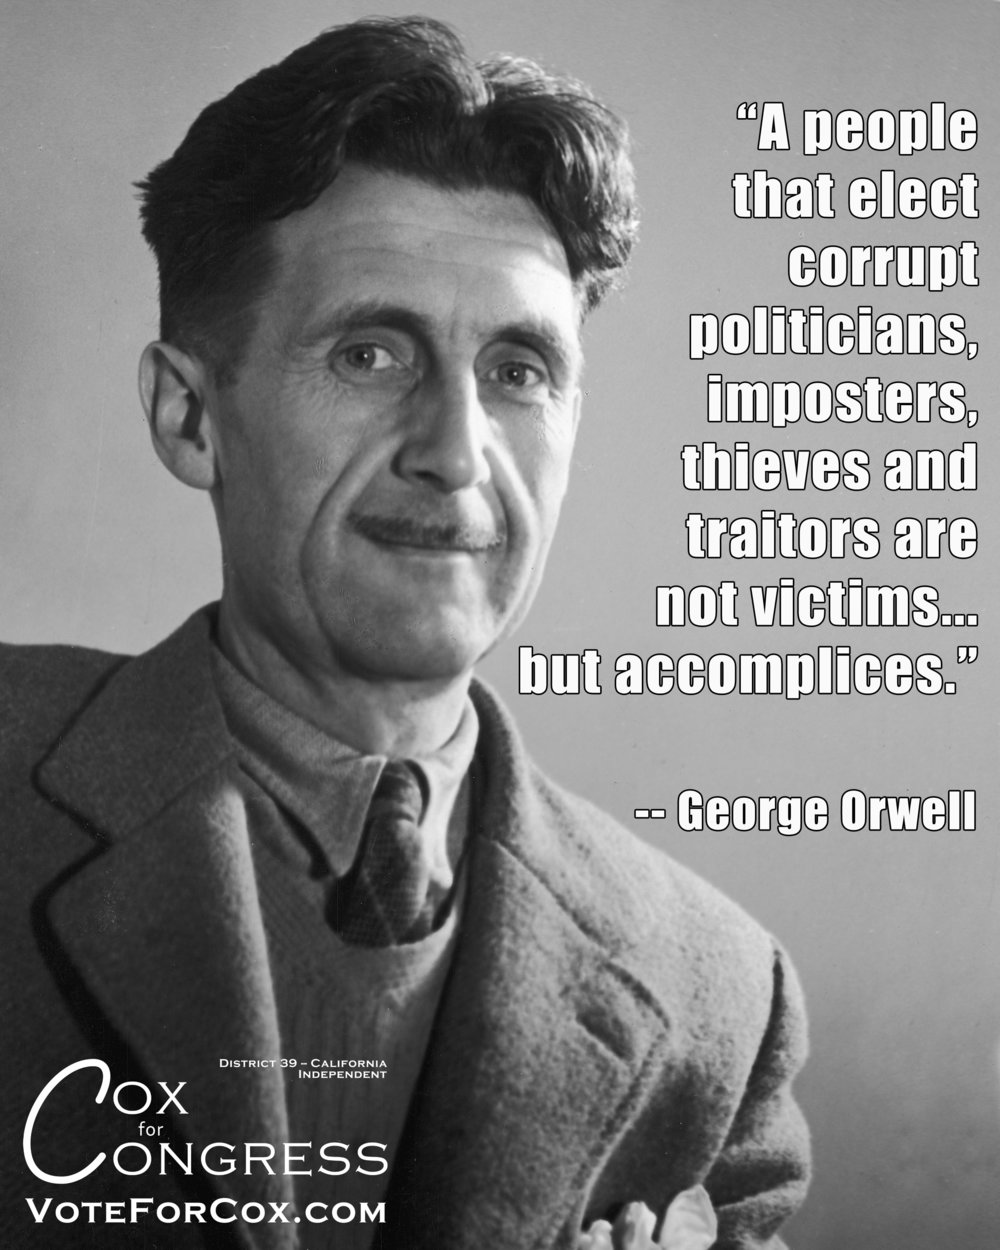 Author George Orwell on the responsibility we must own by continuing to elect corrupt politicians to office.